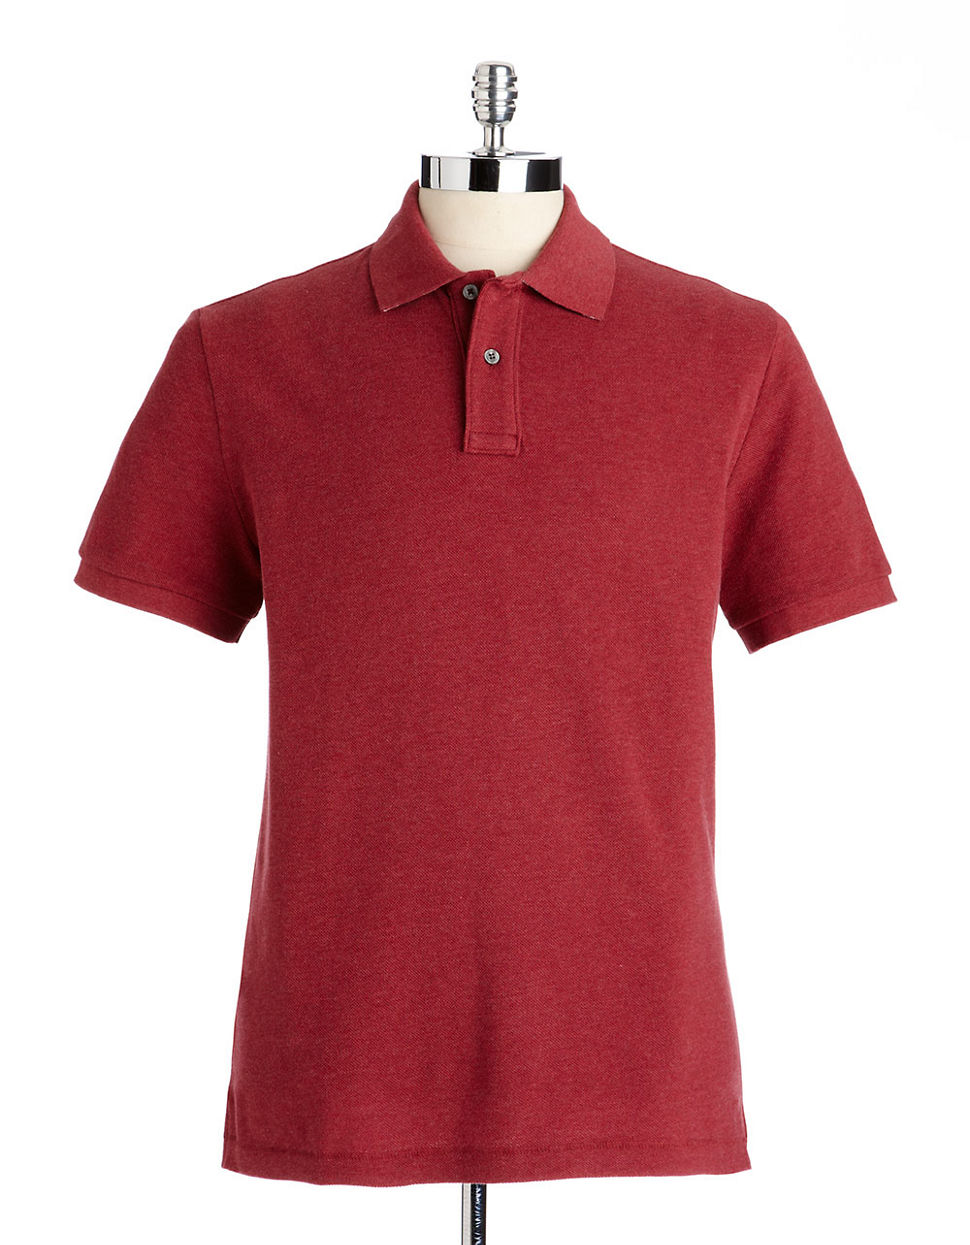 Black brown 1826 Classic Fit Cotton Contrast Pique Polo russet heather Large